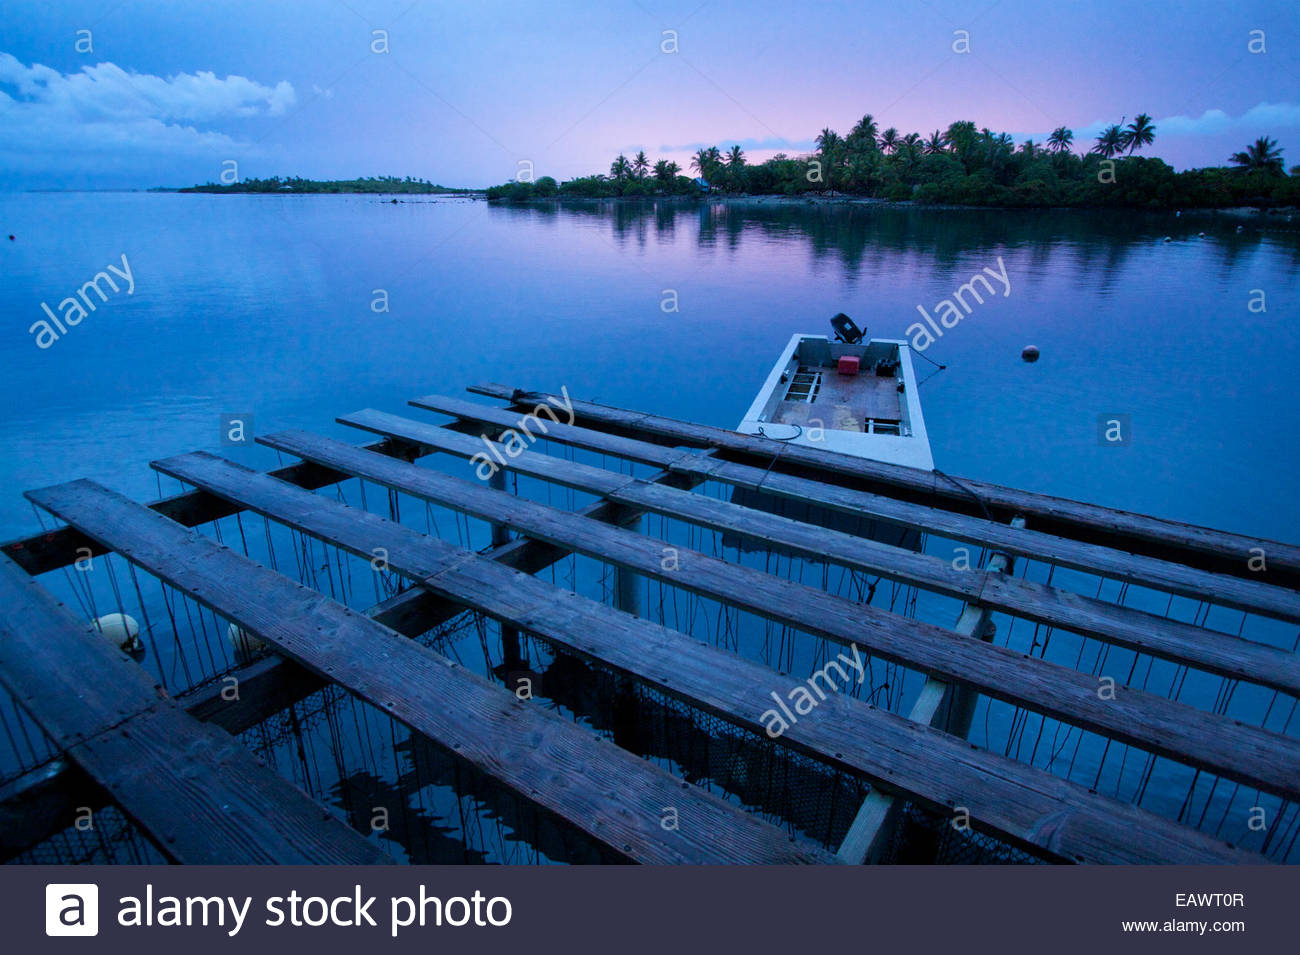 A boat is tied up to an oyster platform on a Tahitian pearl farm at the end of a calm day. - Stock Image